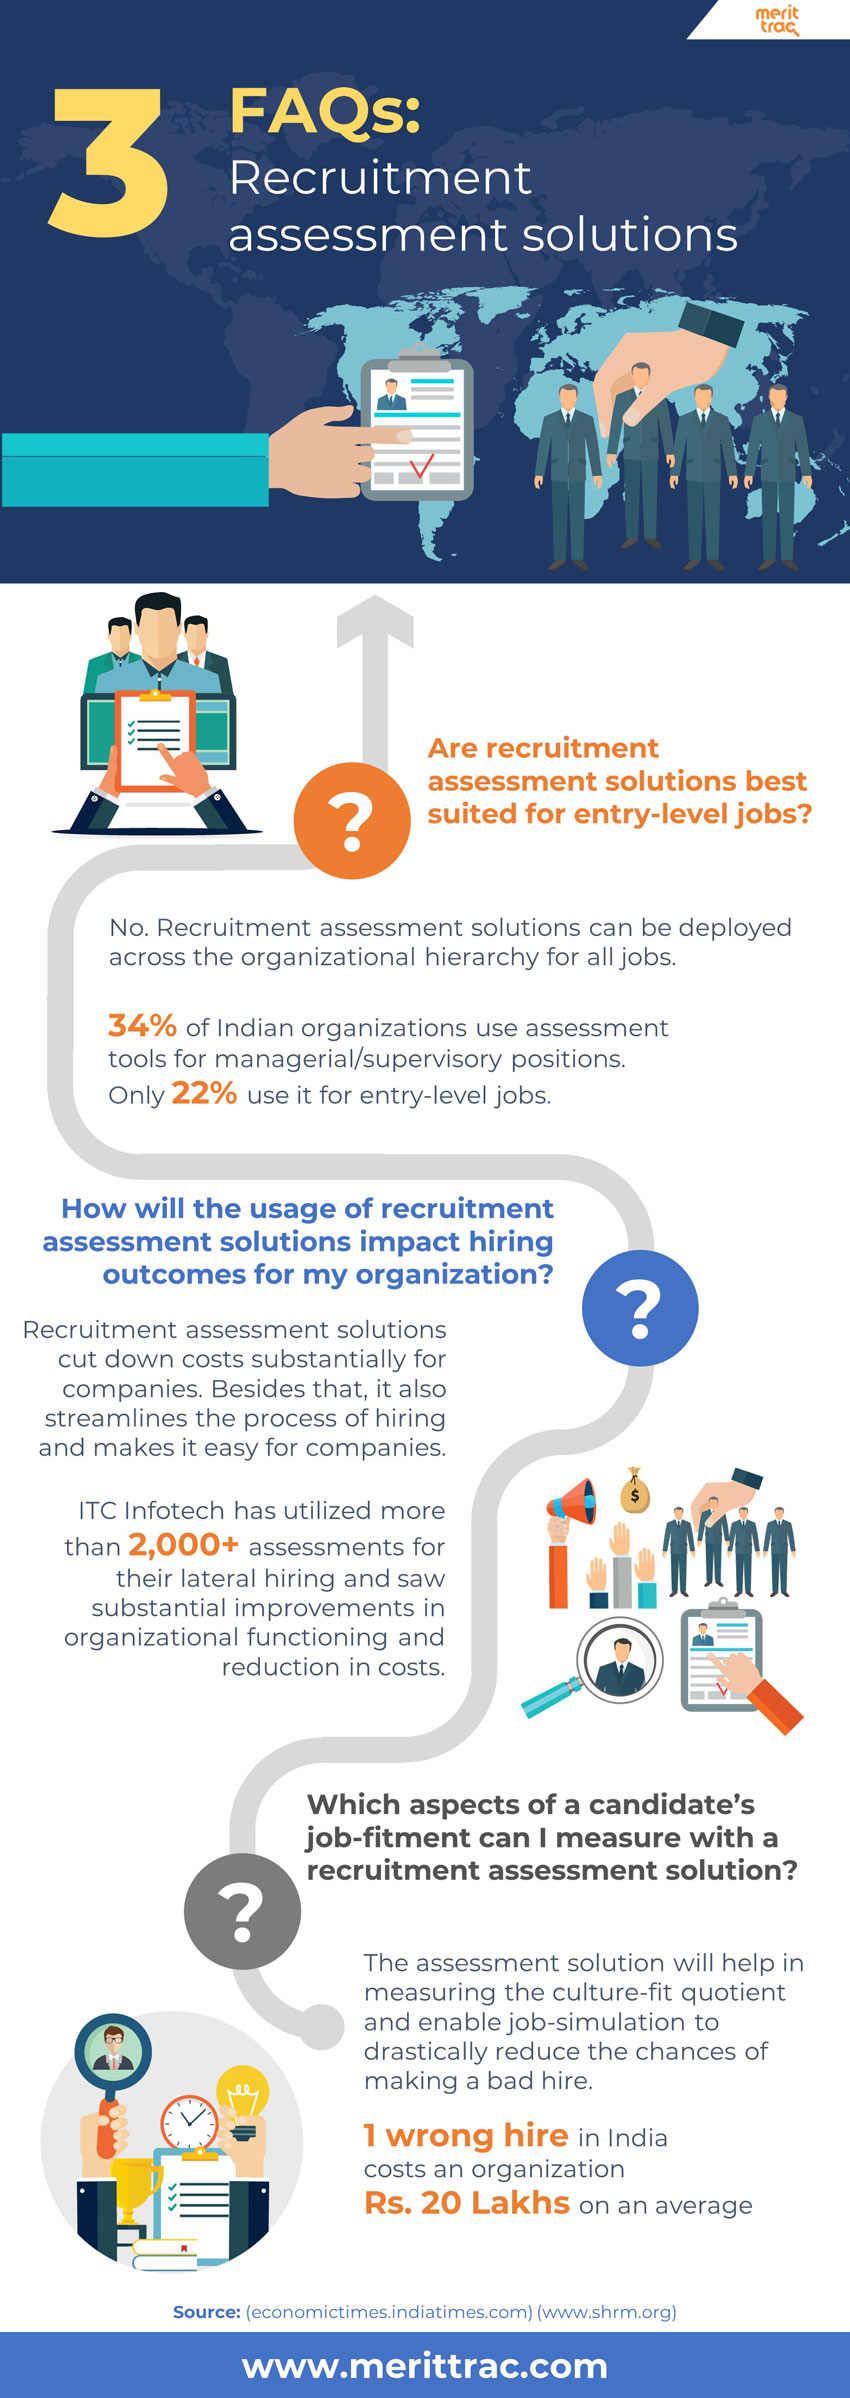 Recruitment Assessment Solutions: 3 FAQs